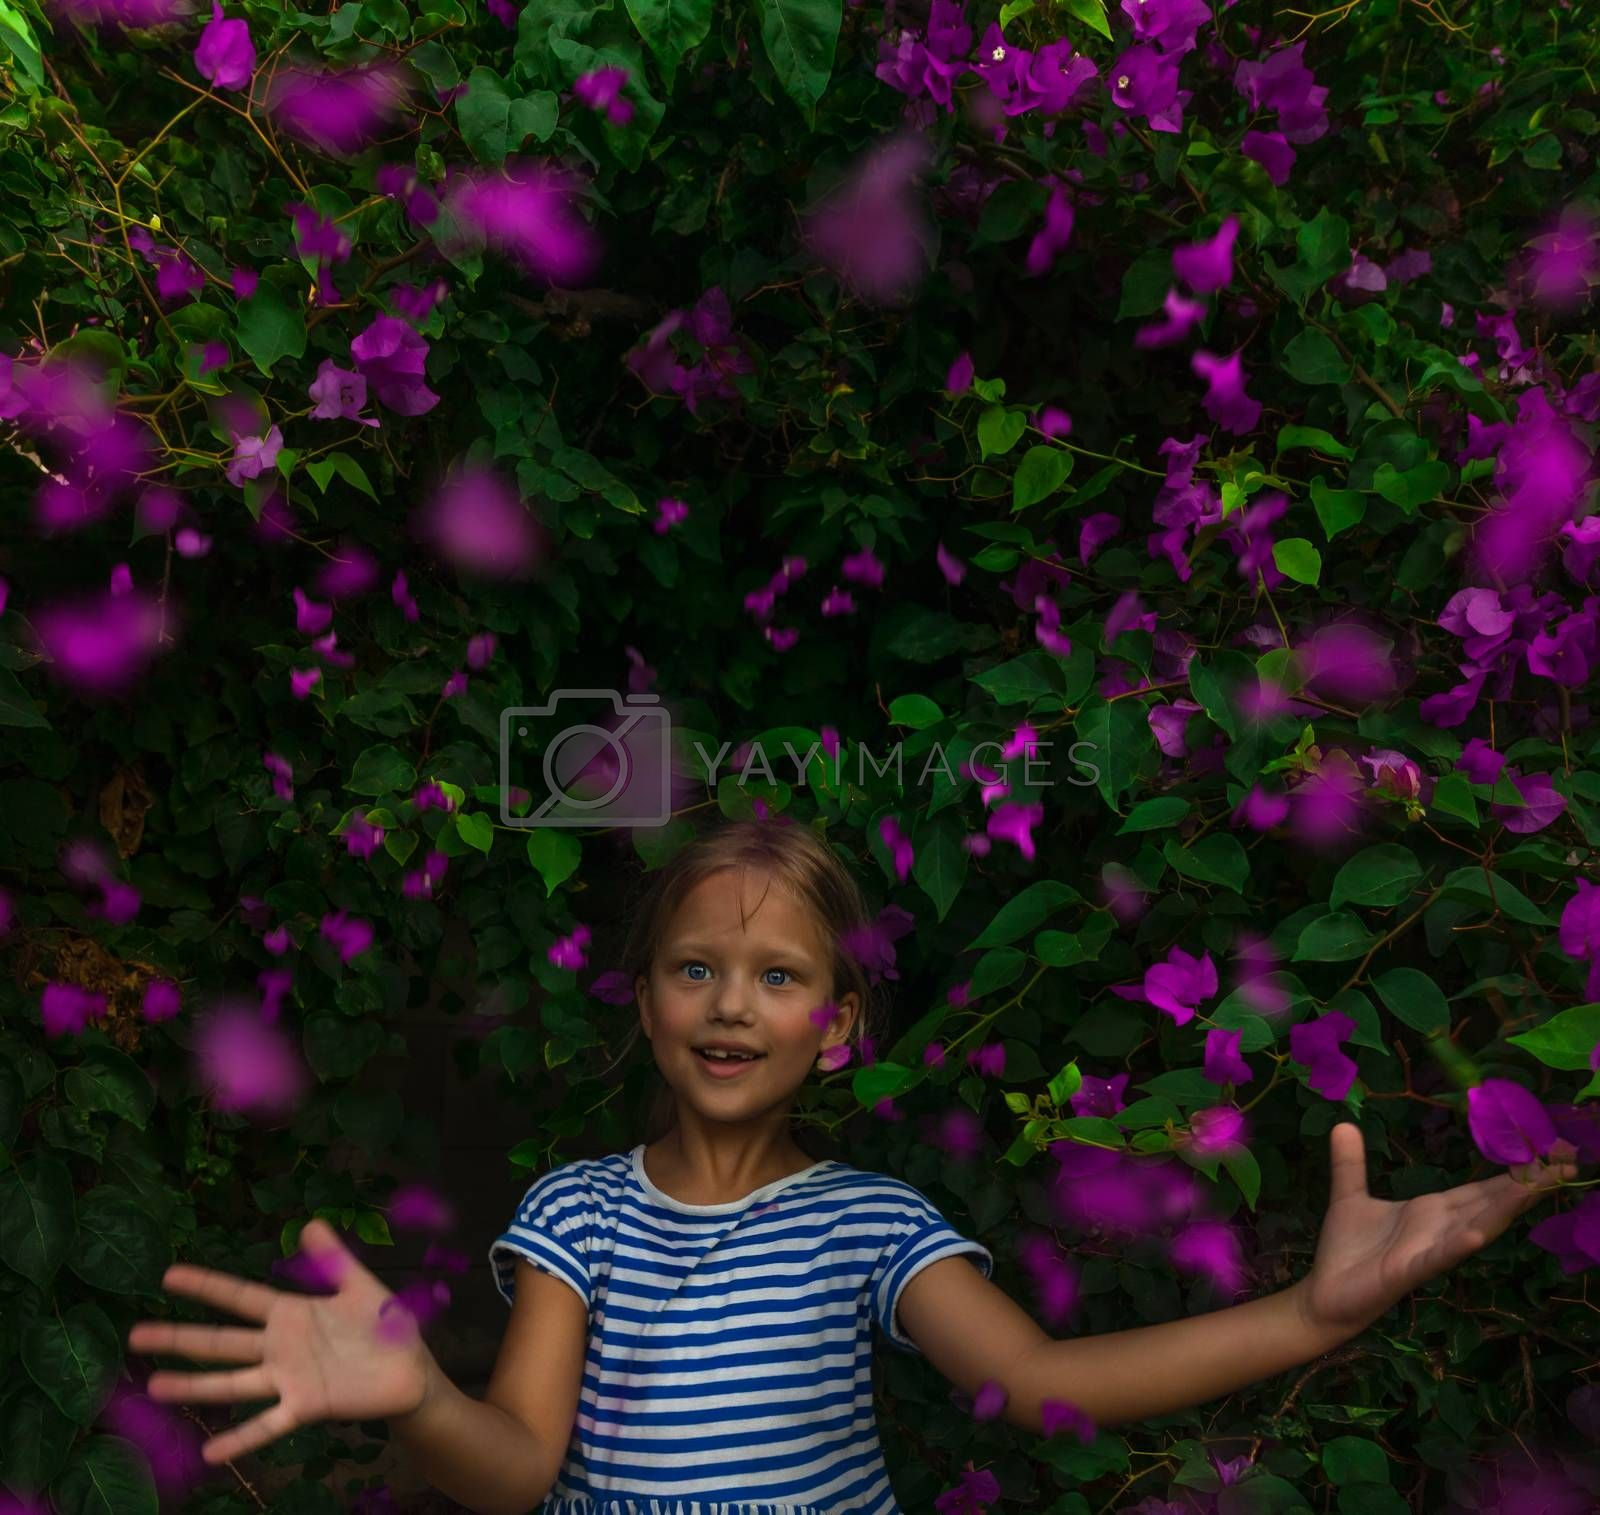 Royalty free image of Little Girl Among Beautiful Flowers by Anna_Omelchenko